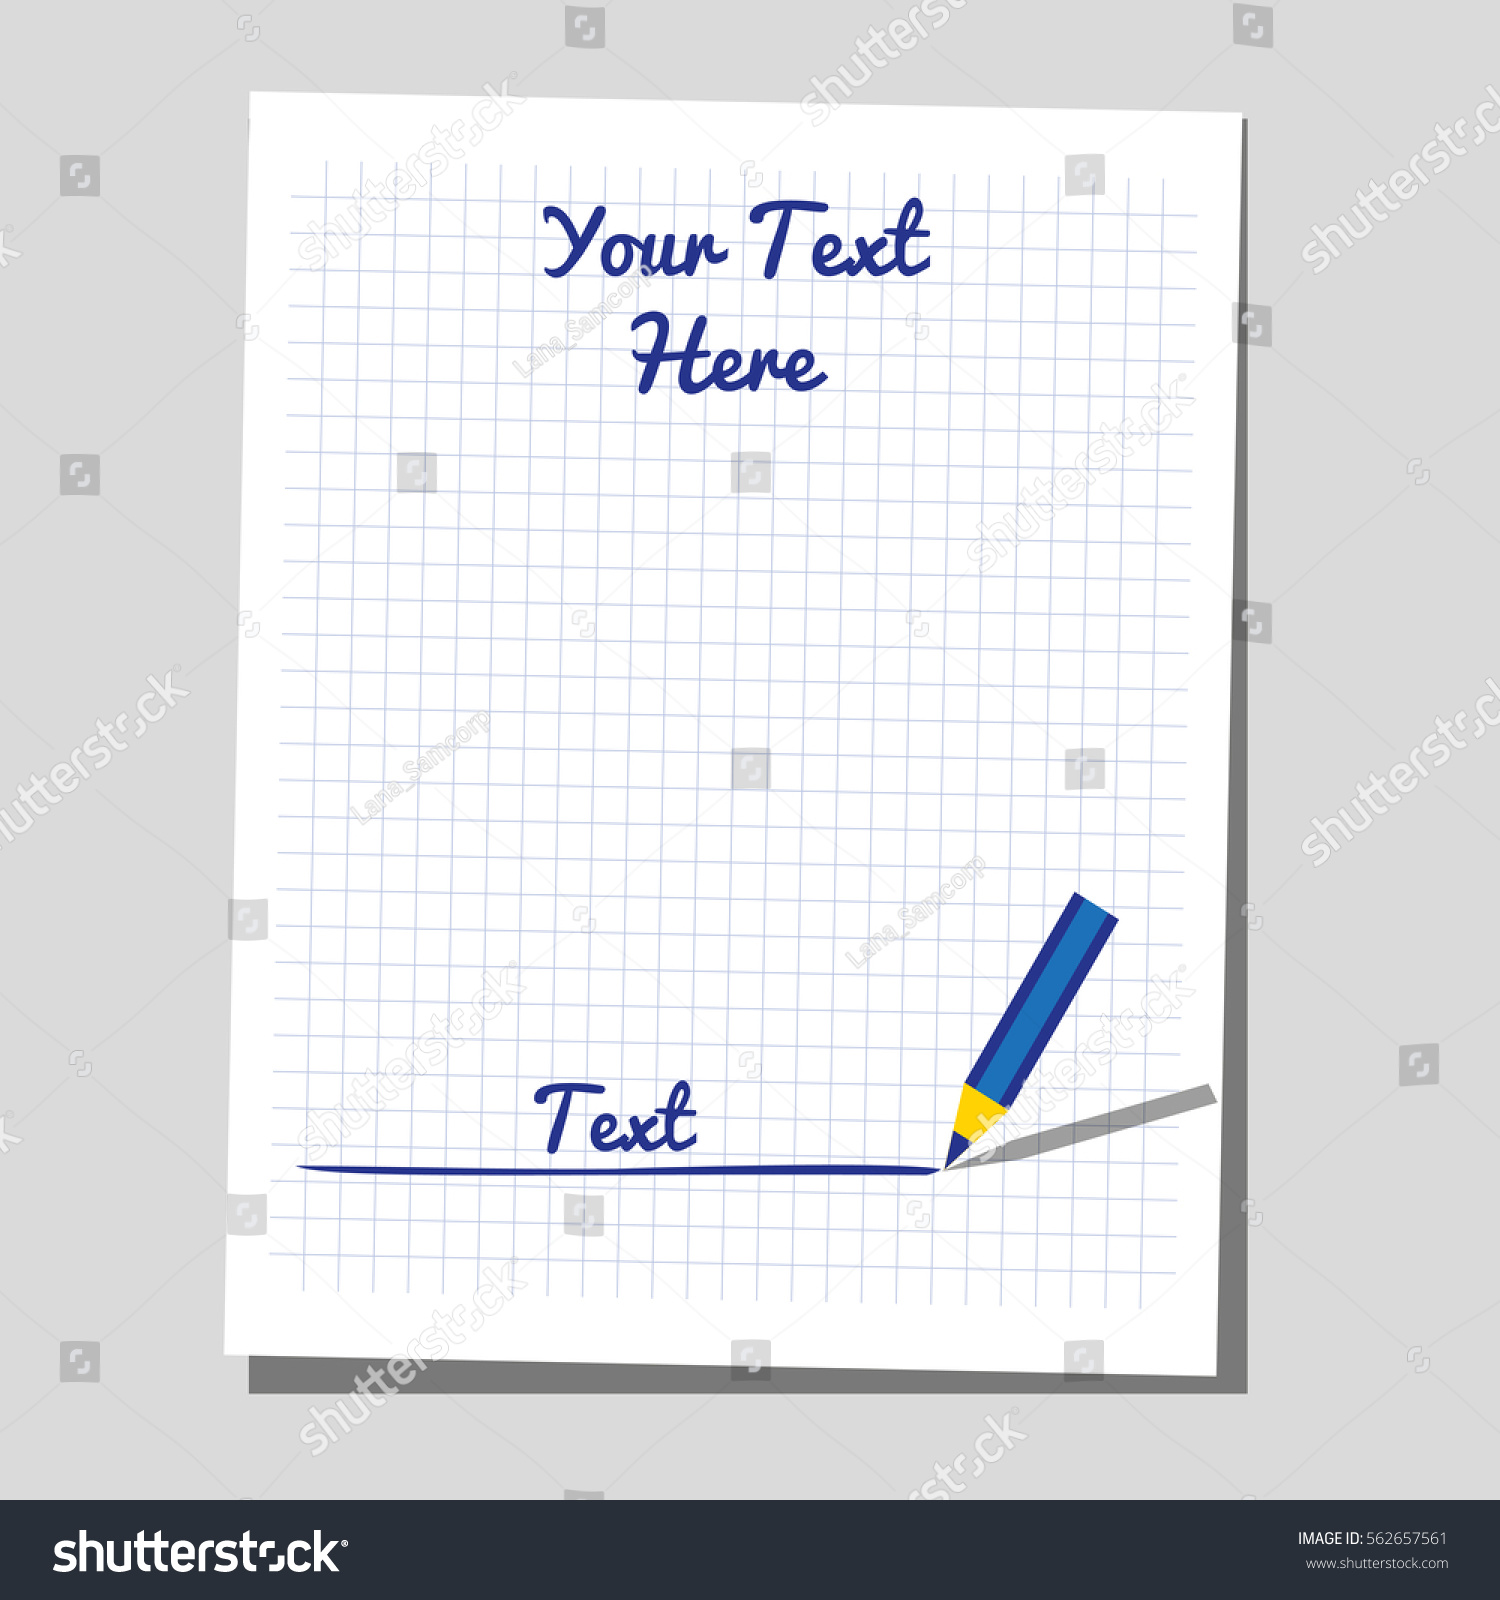 Flat Identity Blank Sheet Of Paper For Writing, Test, Exam. Business Test  Icon